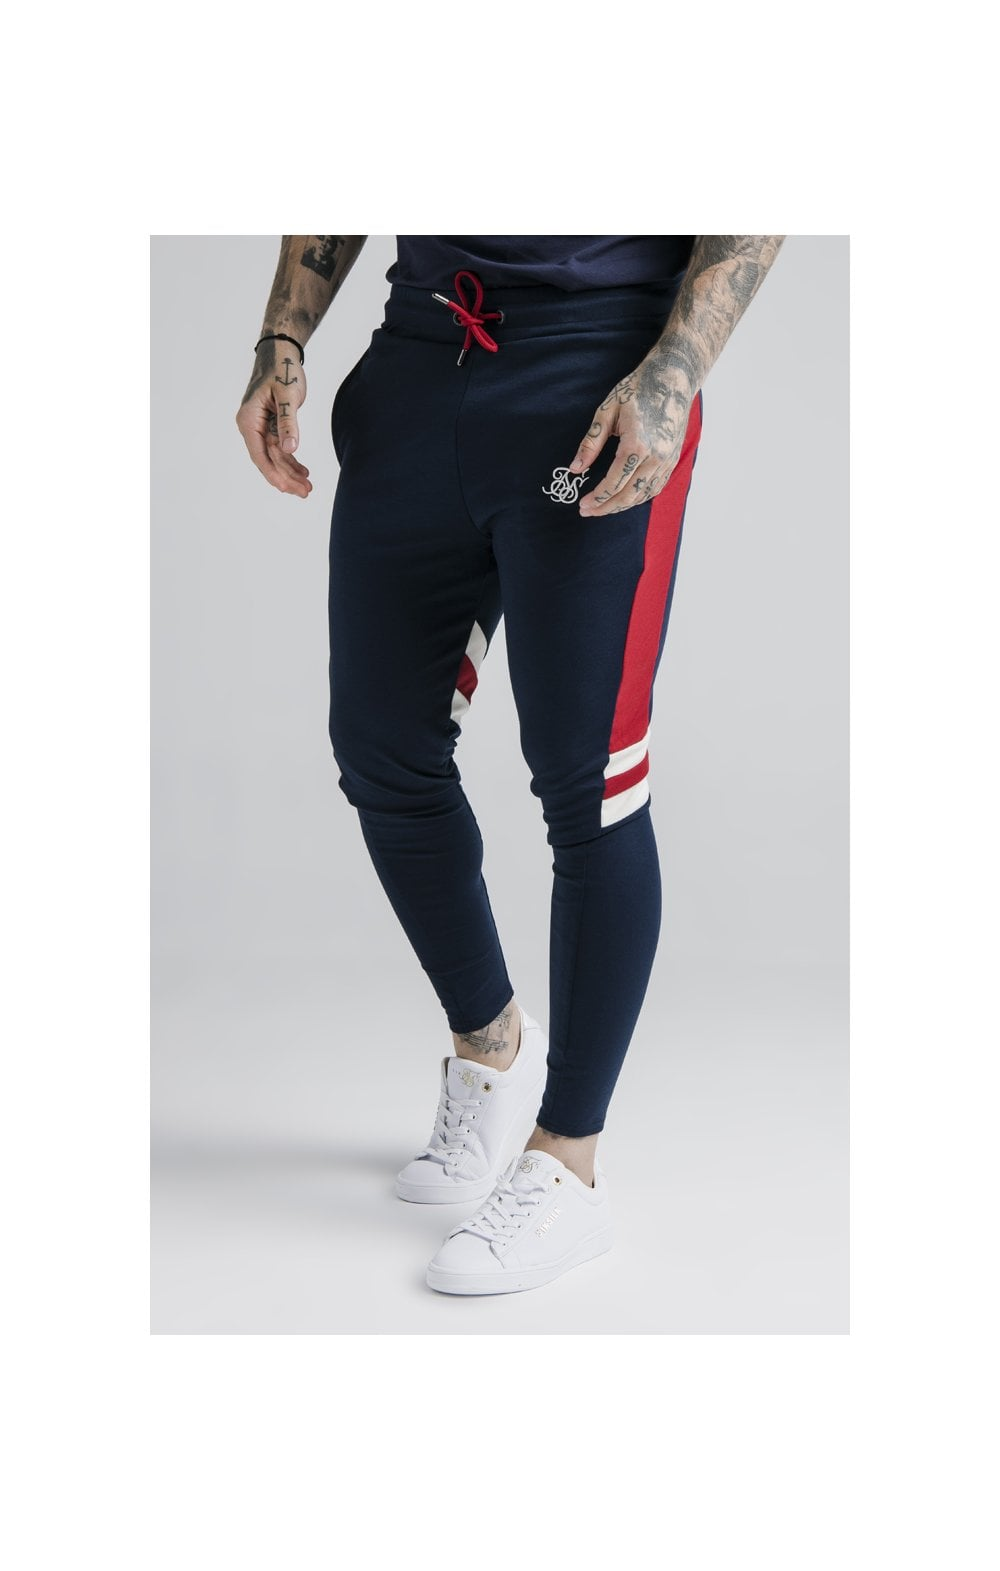 SikSilk Retro Panel Track Pants - Navy, Red & Off White